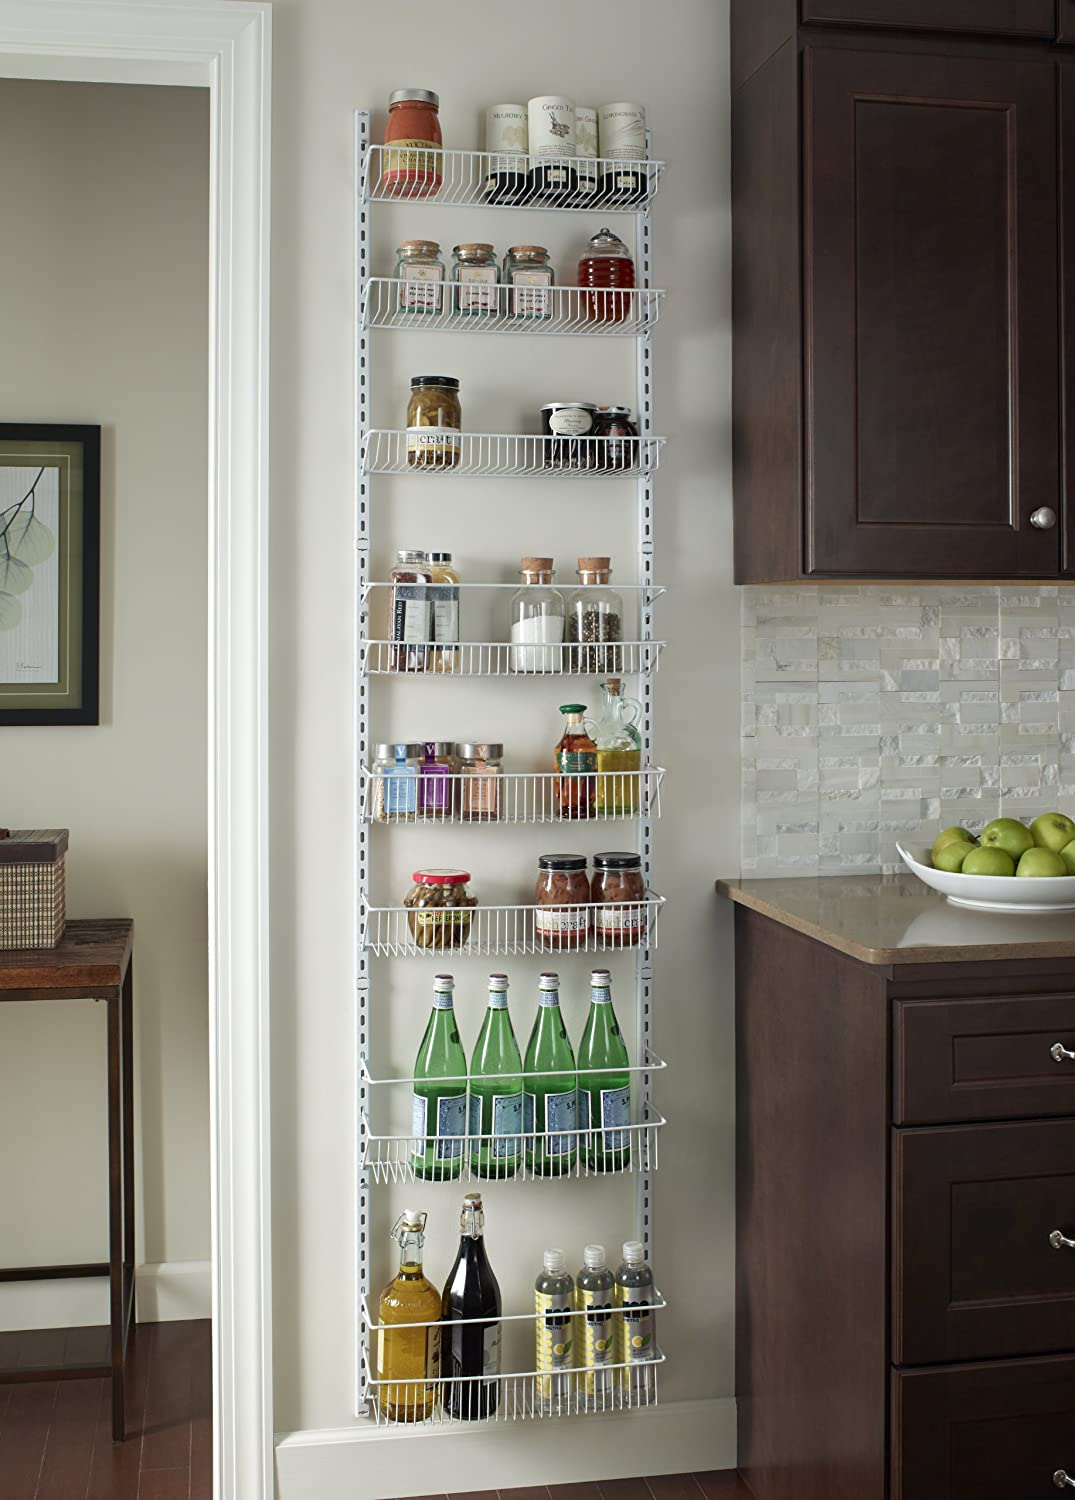 Over The Door Storage Rack Basket Shelf Kitchen Organizer Wall Holder Spice  Herb Ebay